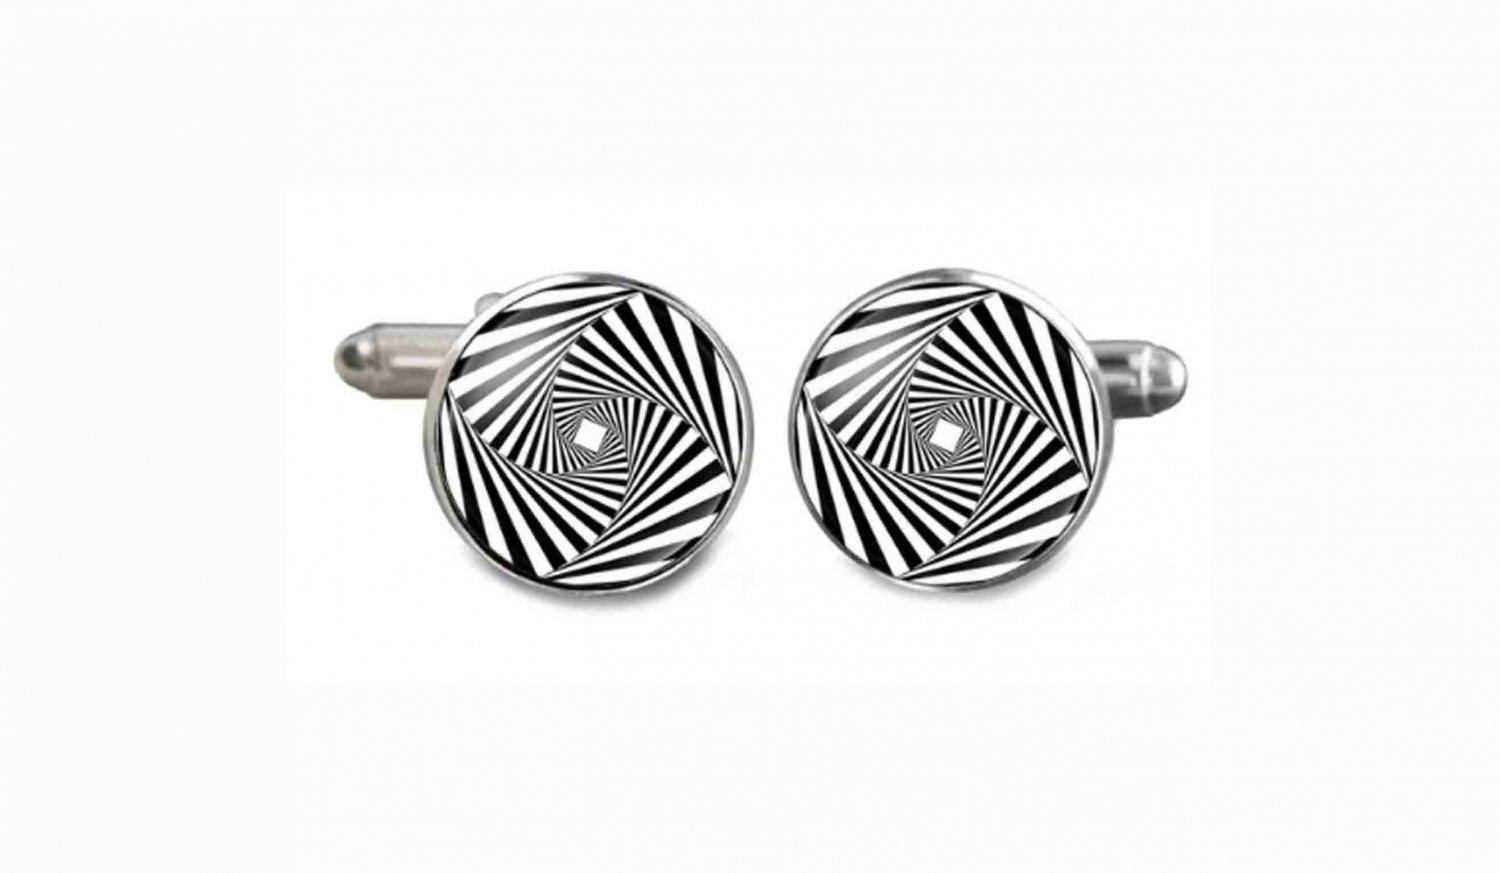 Gascoigne Cufflinks Optical Illusion Black White Silver Men's